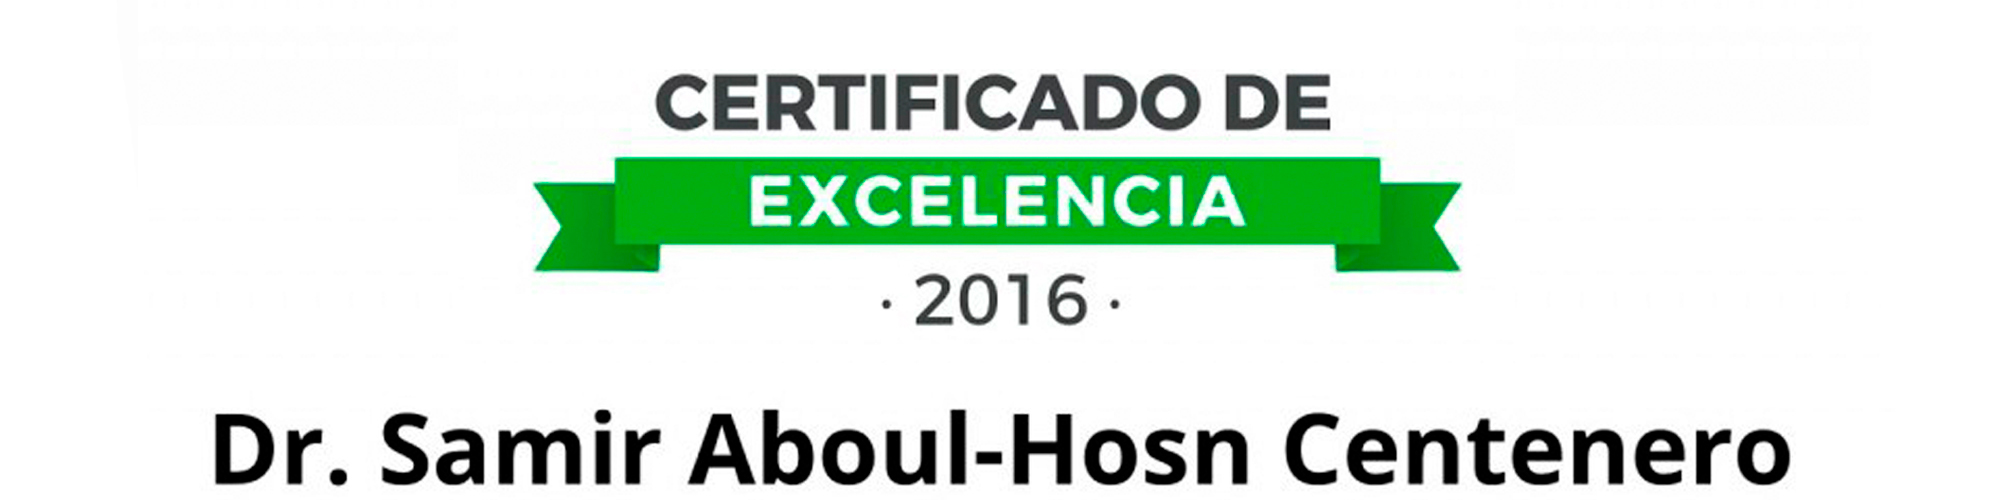 certificat excelencia clinic adental